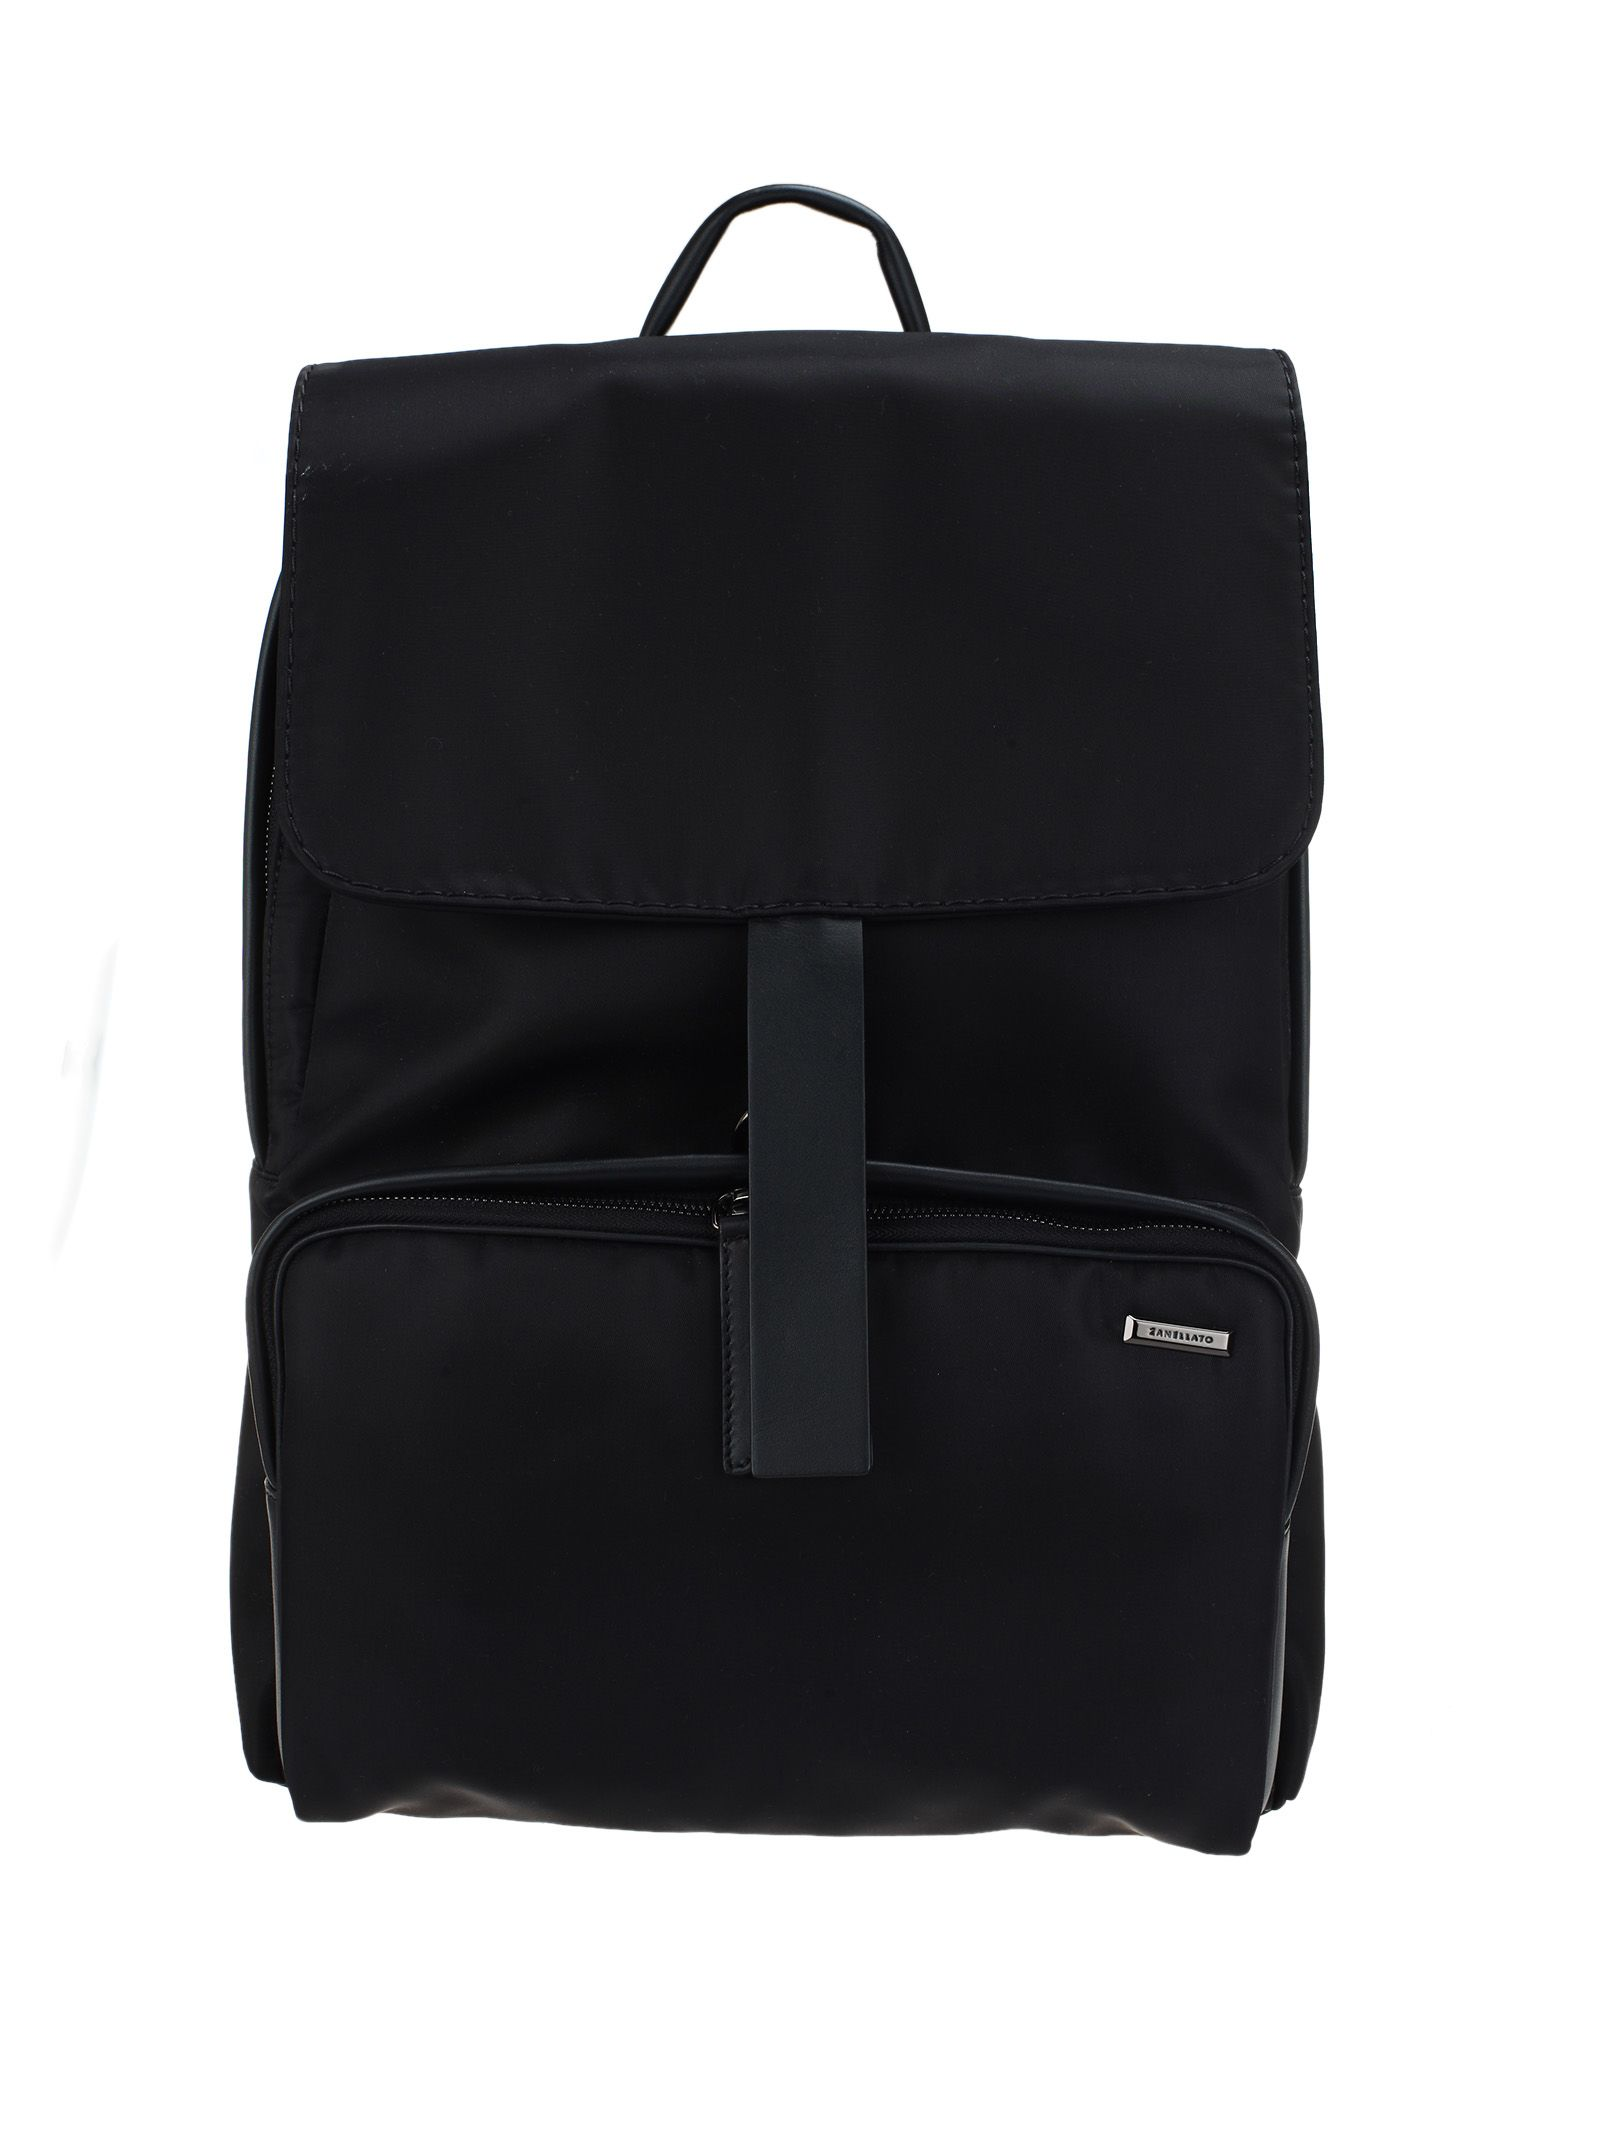 Zanellato Dollarone Backpack